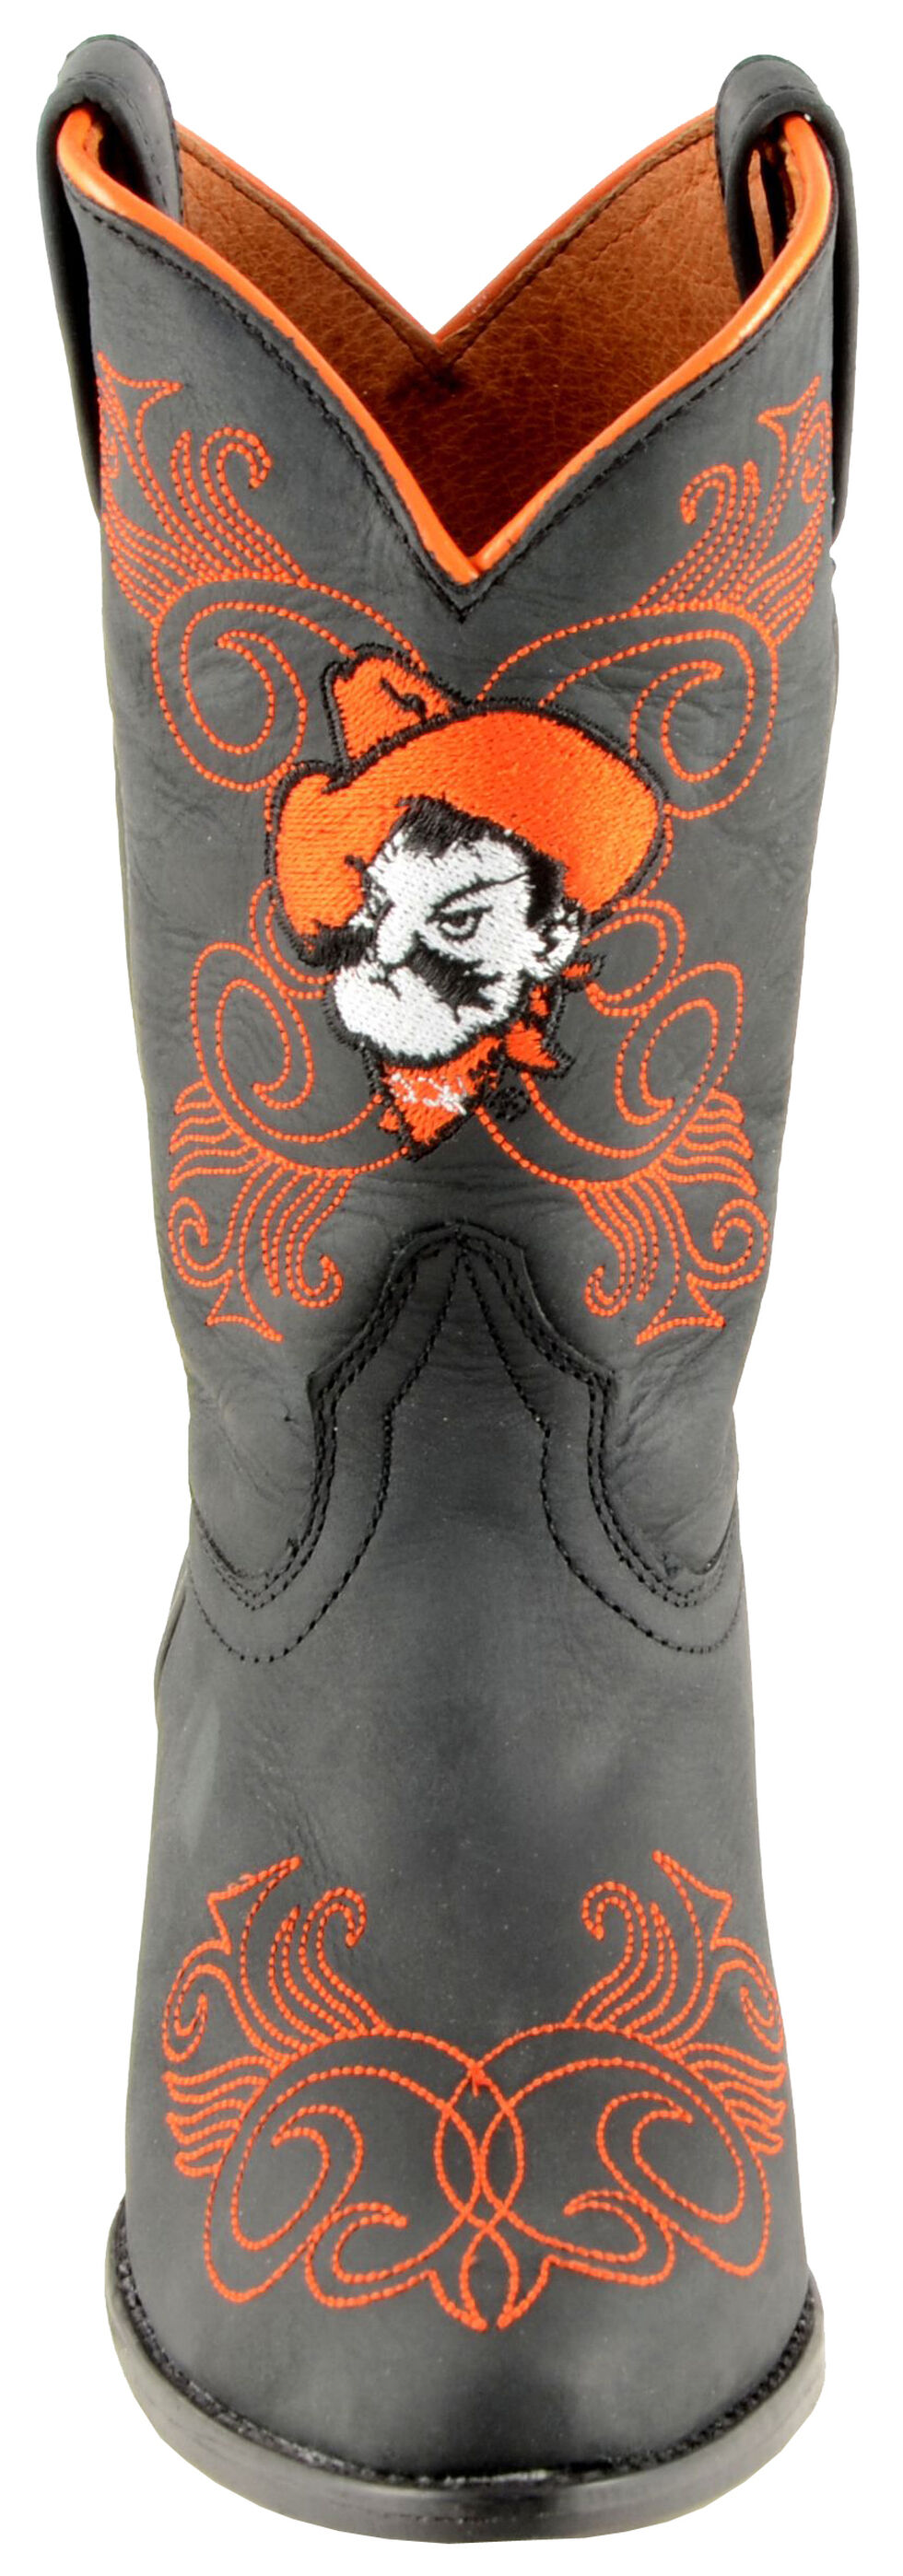 Gameday Boots Girls' Oklahoma State University Western Boots - Medium Toe, Black, hi-res